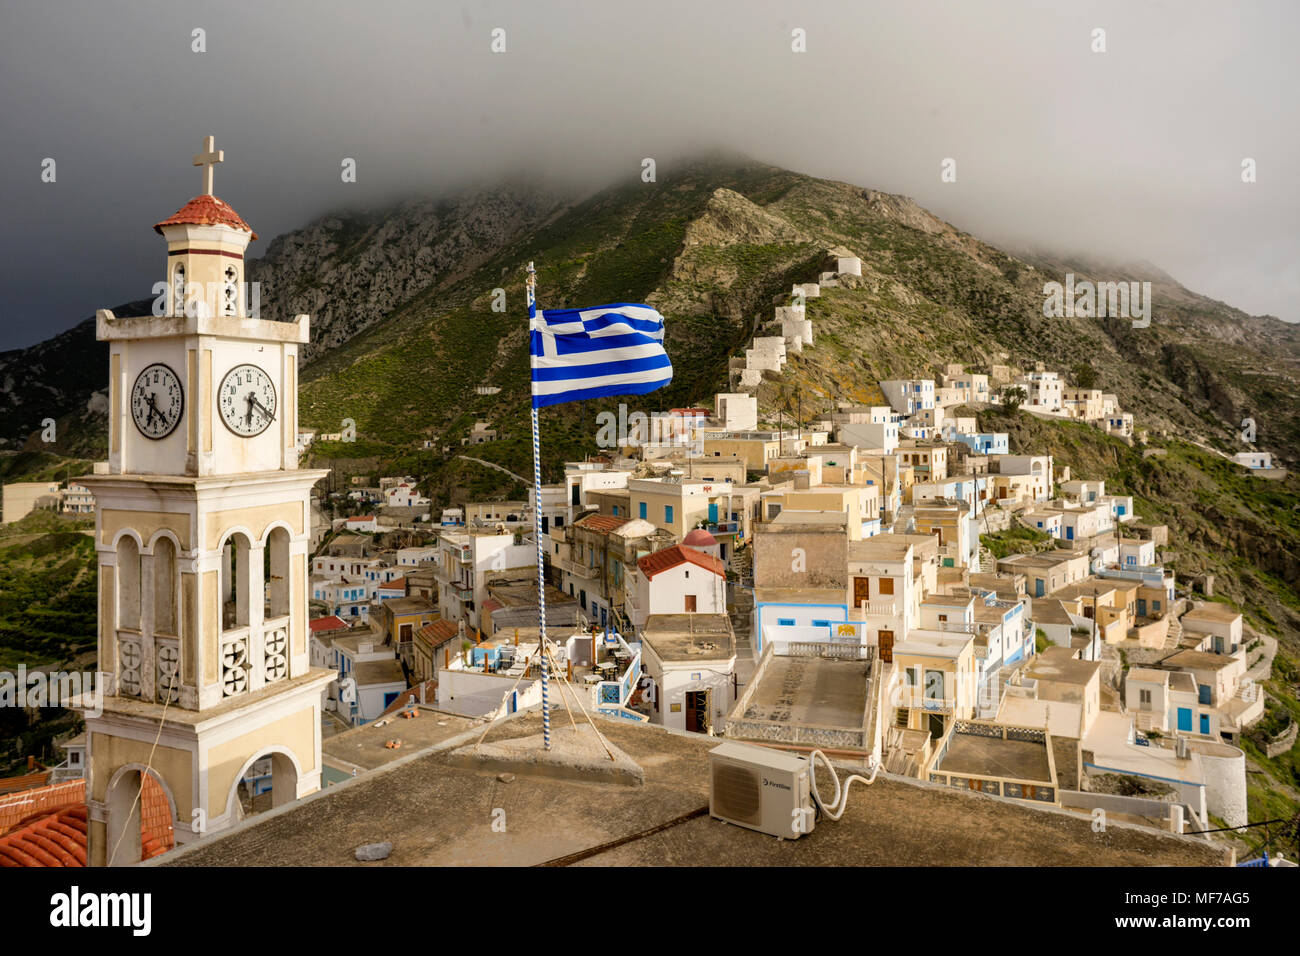 Greece, Aegean Islands, Olympos, Karpathos island, the church and the top of the village with the ruined windmill Stock Photo